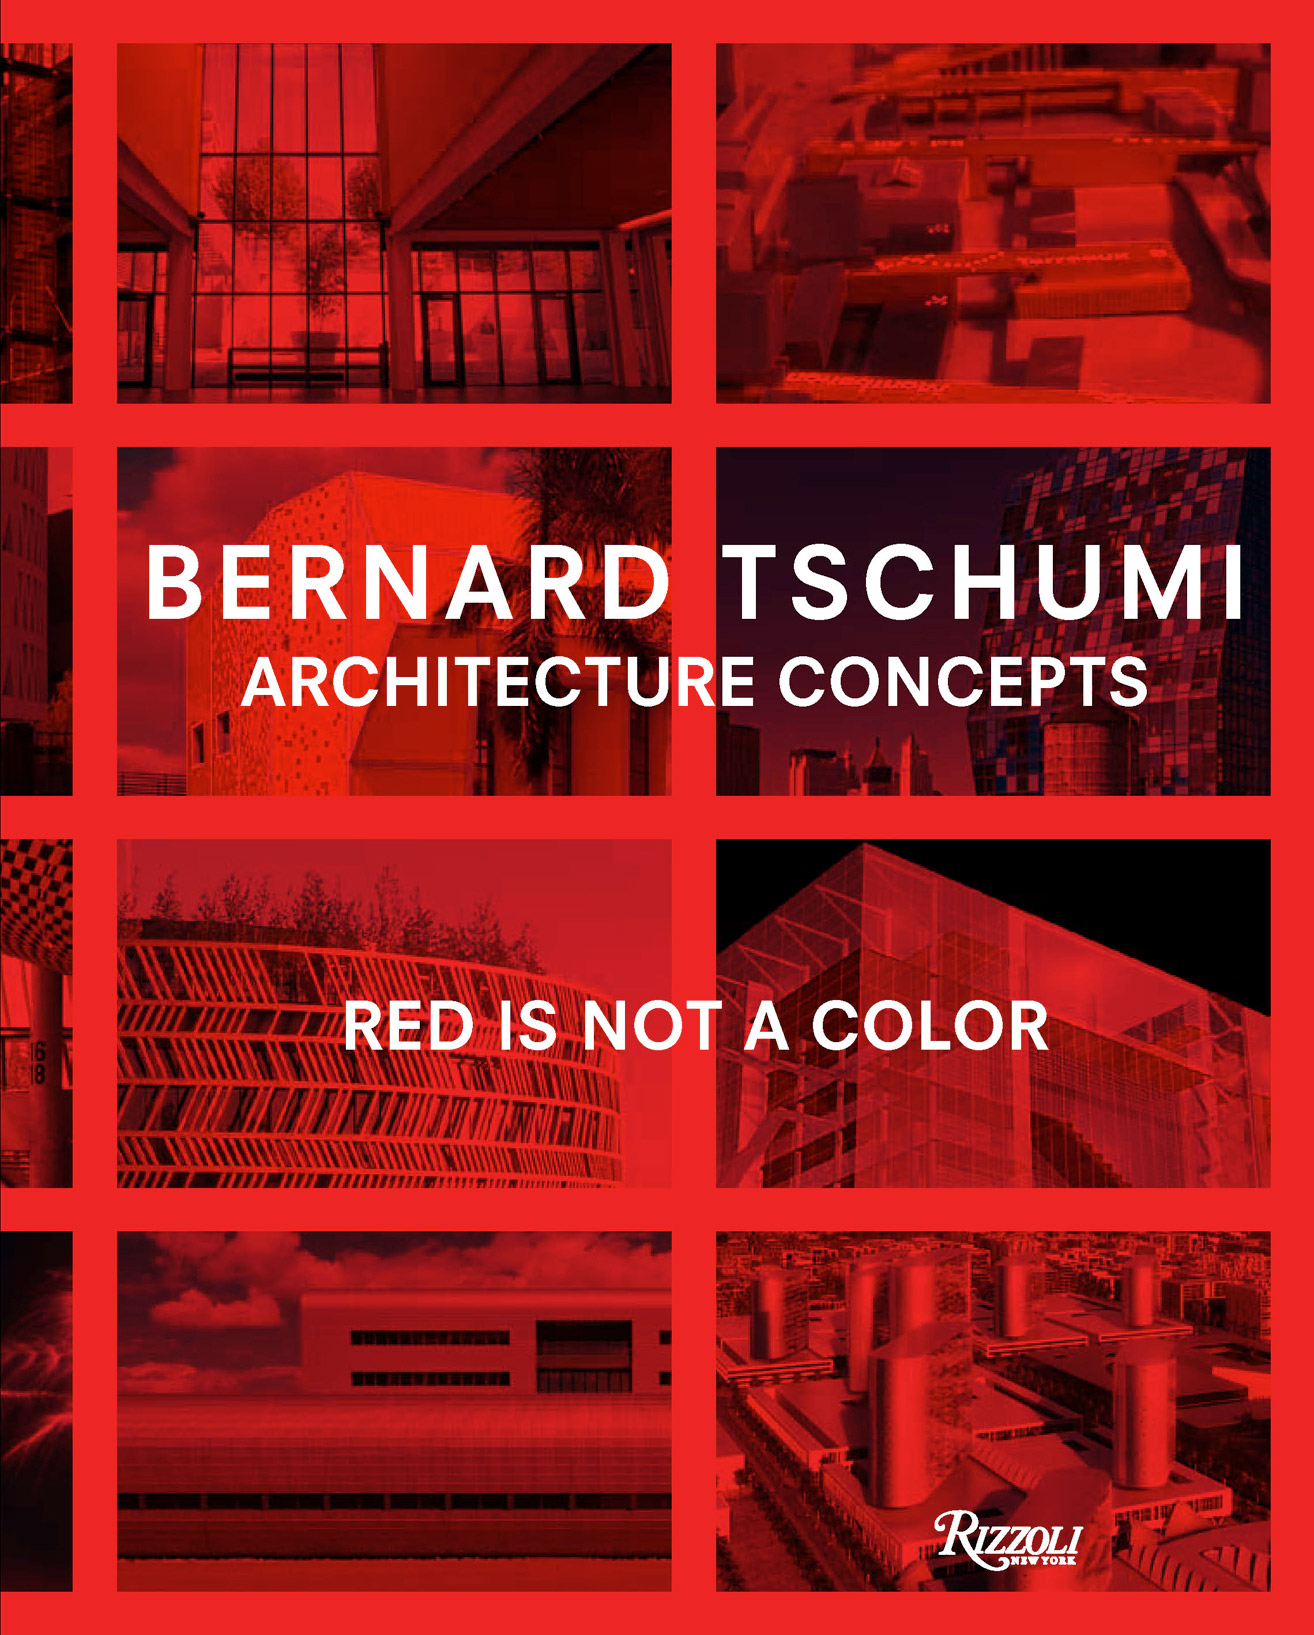 Book cover. Bernard Tschumi: Architecture Concepts: Red is Not a Color by Bernard Tschumi, Rizzoli New York, 2012.